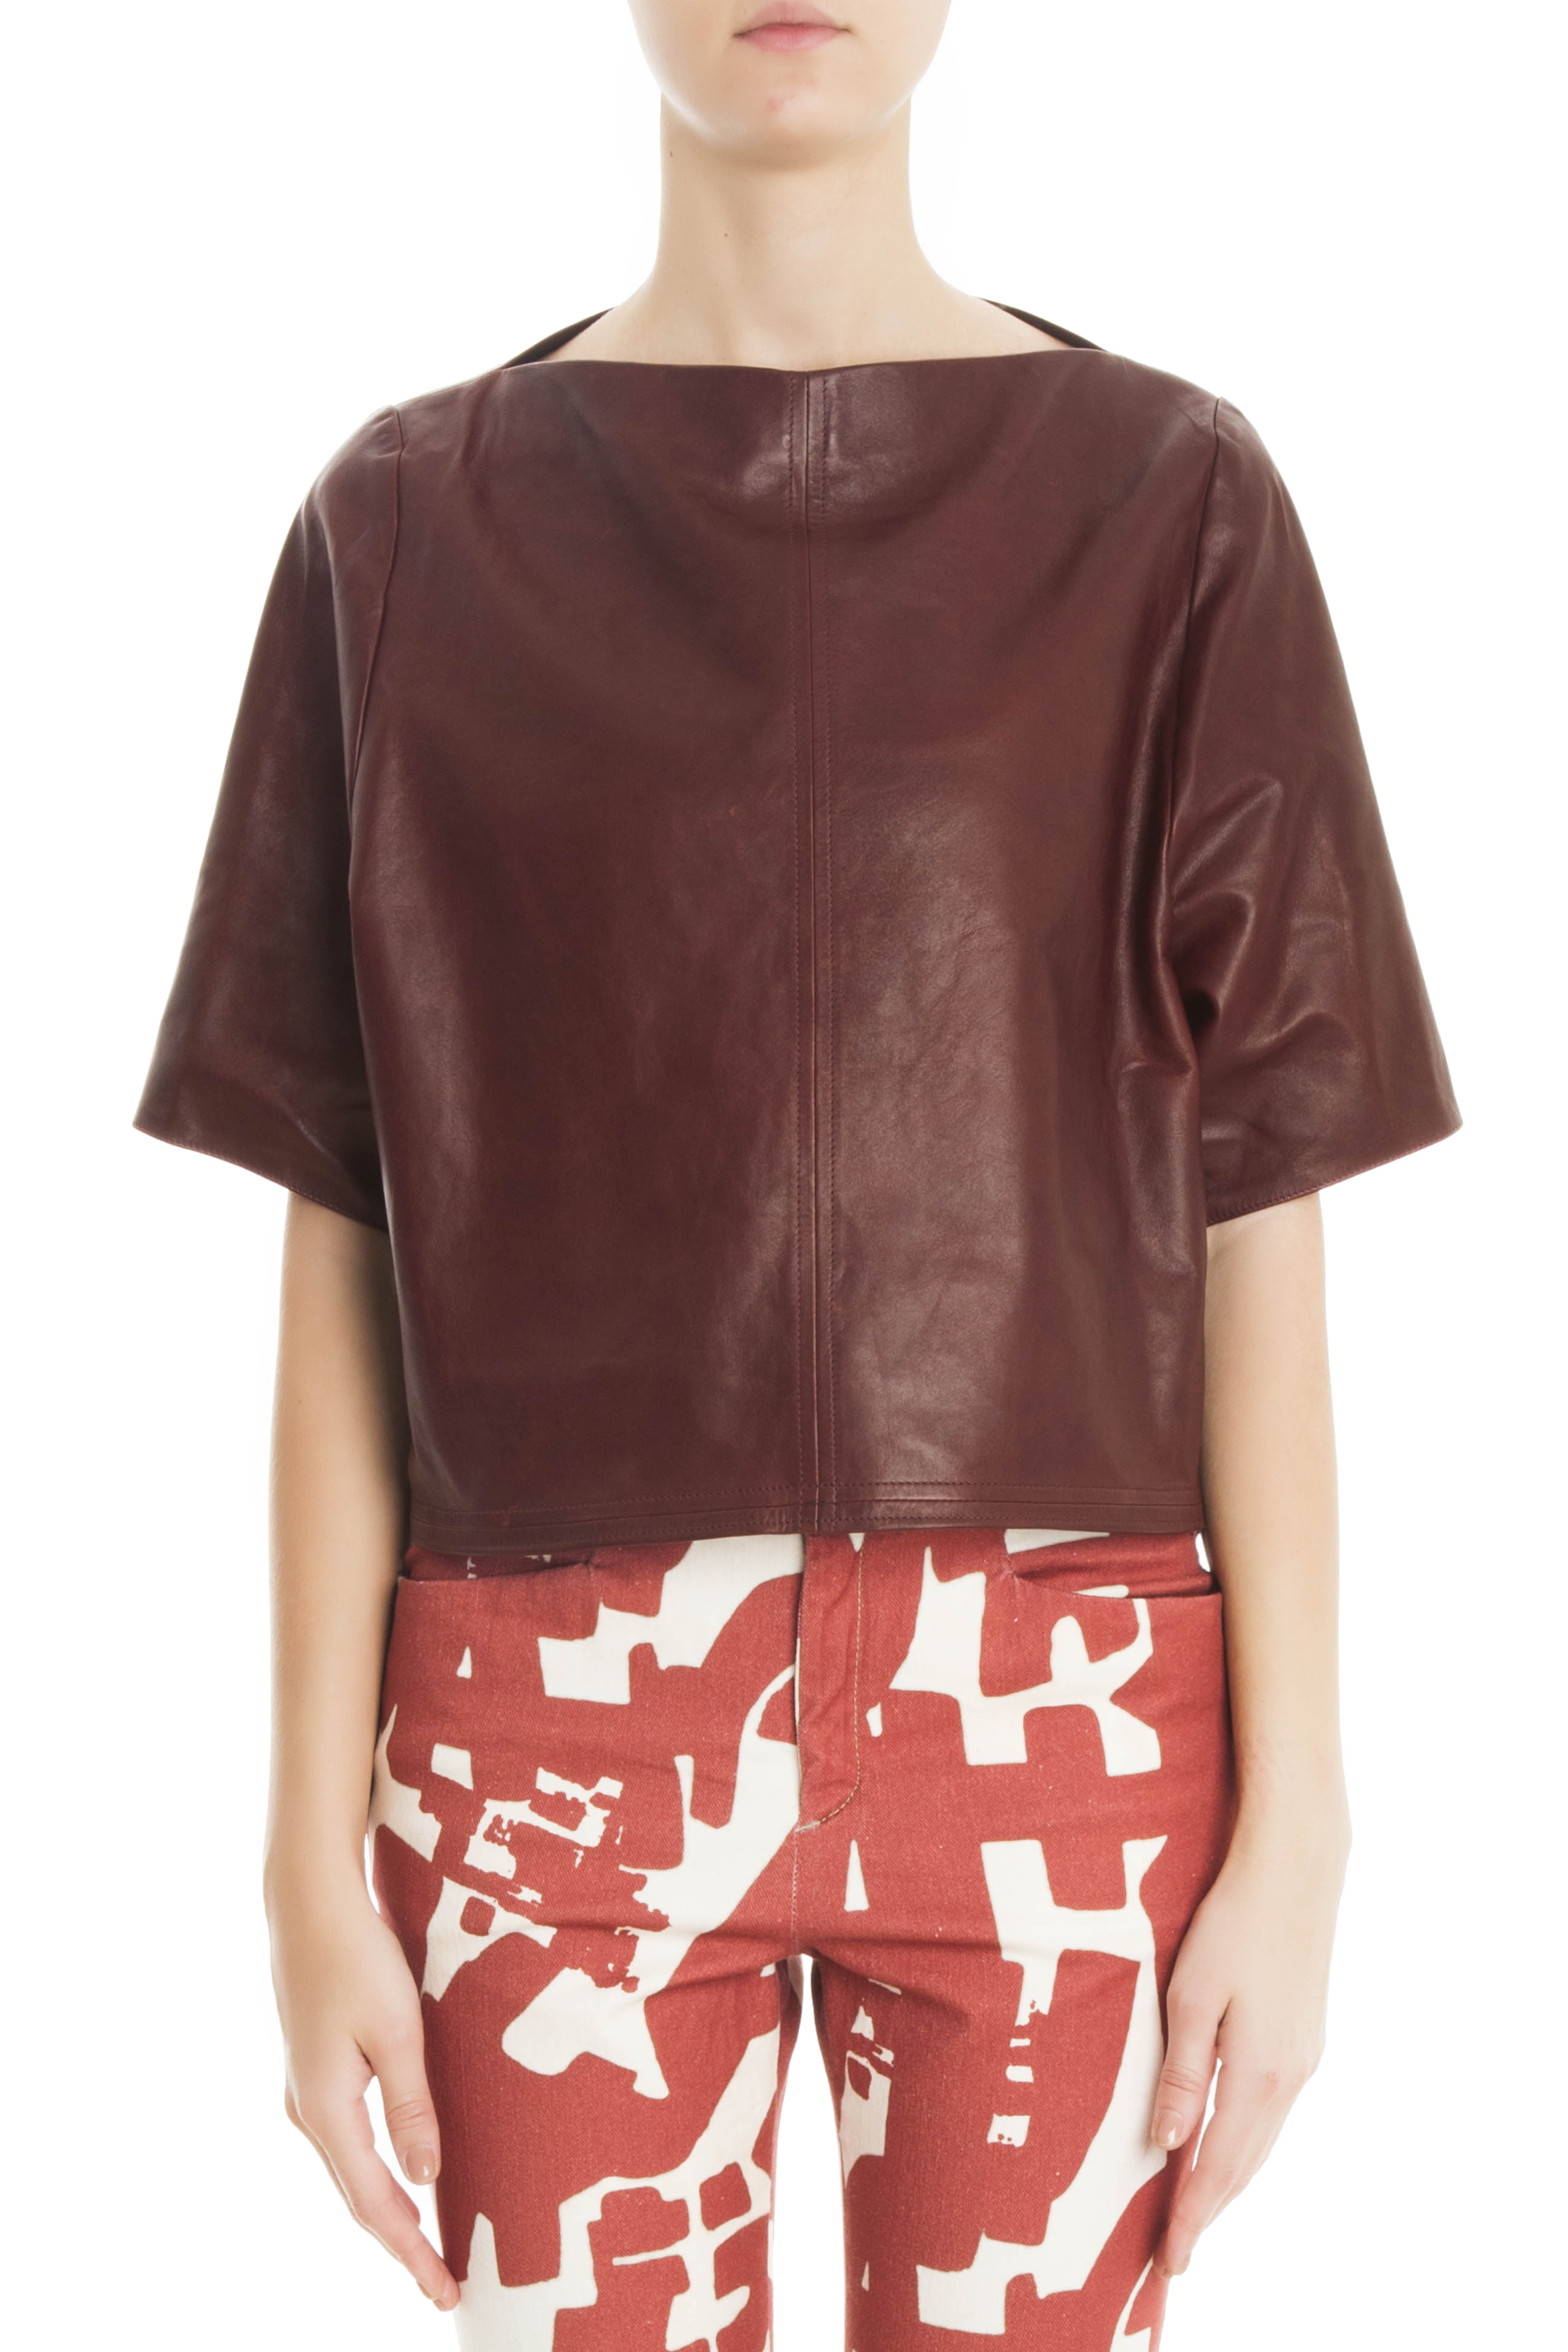 4a554d5f761 Isabel Marant Feza Leather Top in Red - Lyst